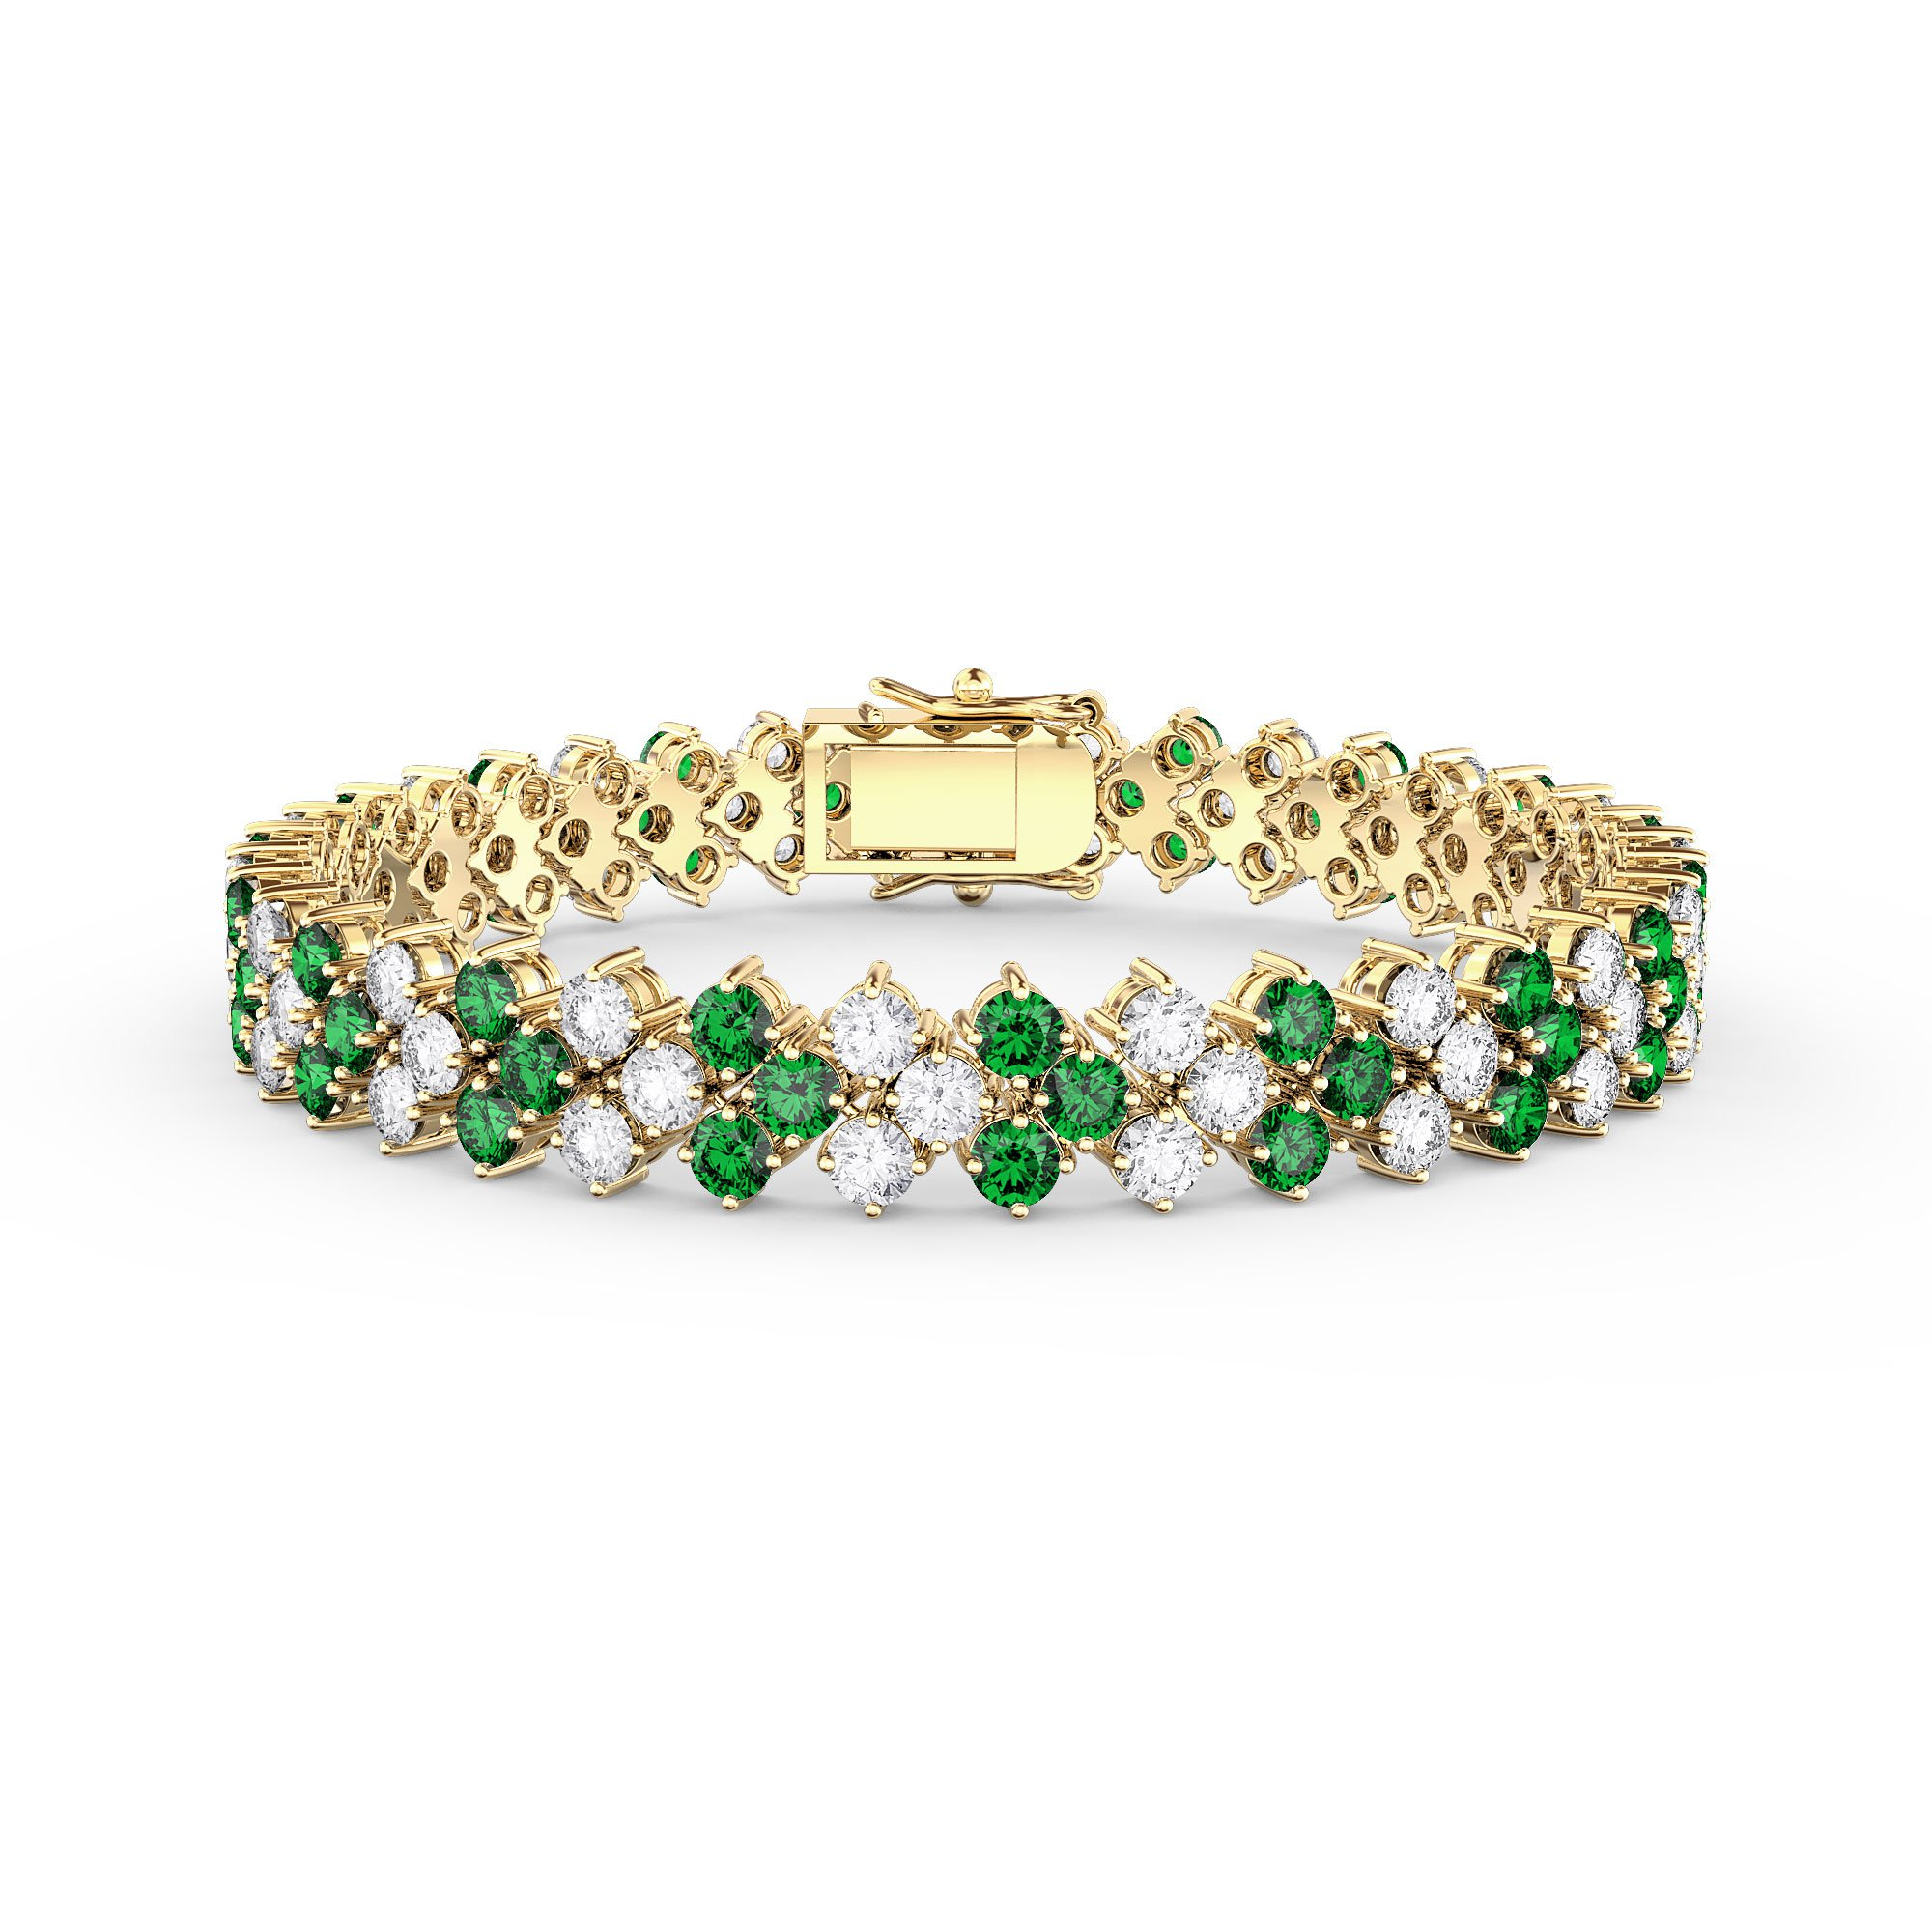 panther rock bangle b bracelet emerald webb diamond crystal main products david gold